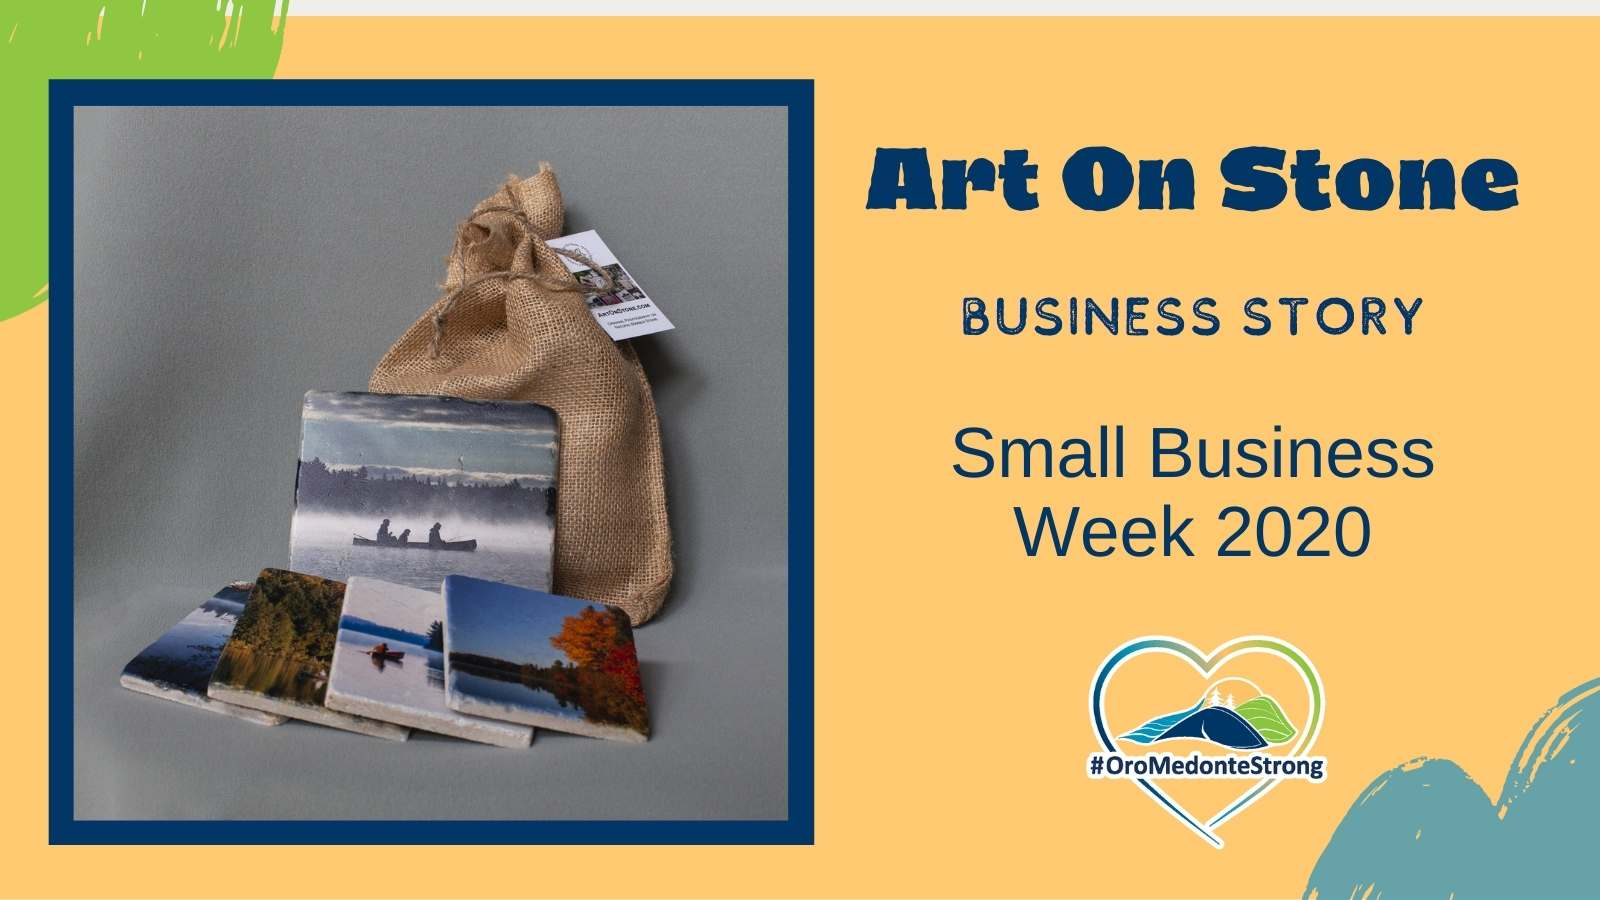 Small Business Week 2020 - Art On Stone.jpg